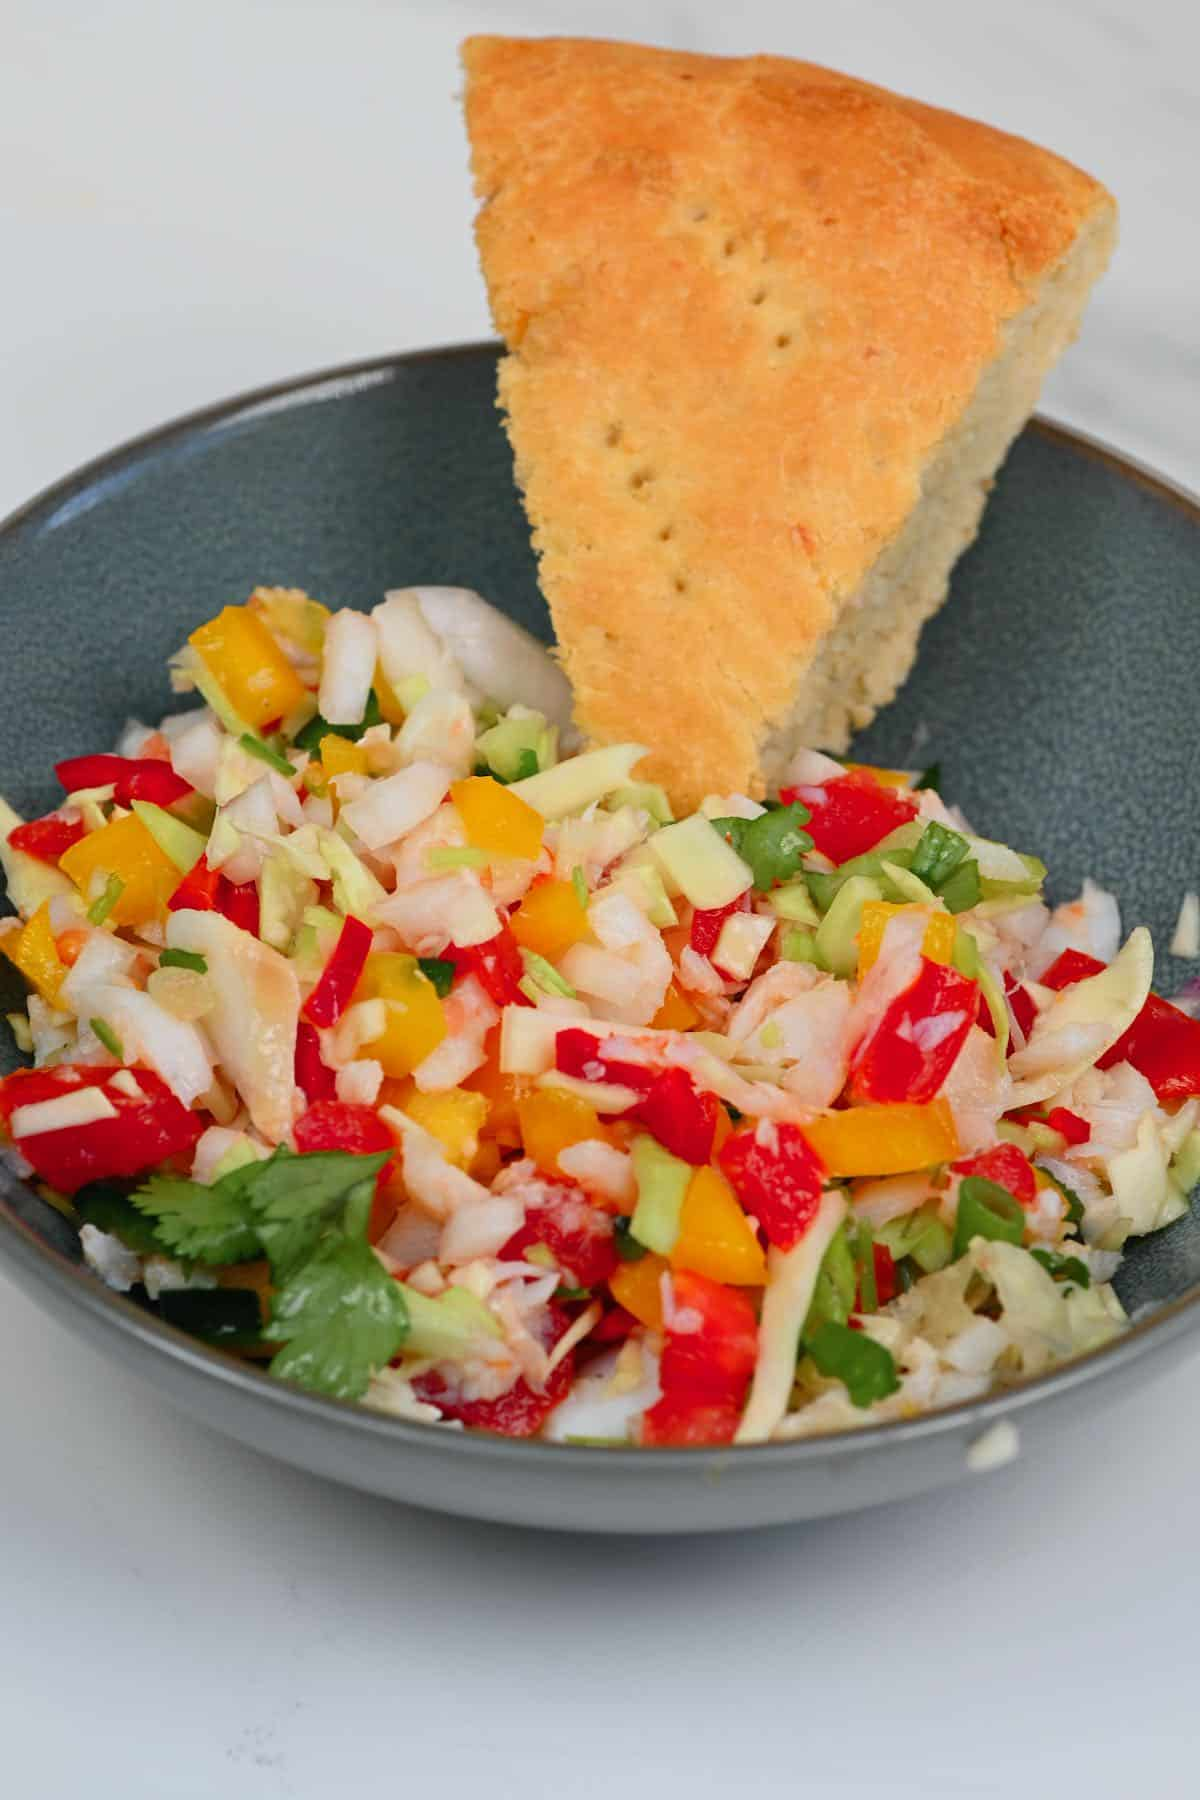 Salted cod salad and a piece of coconut bake